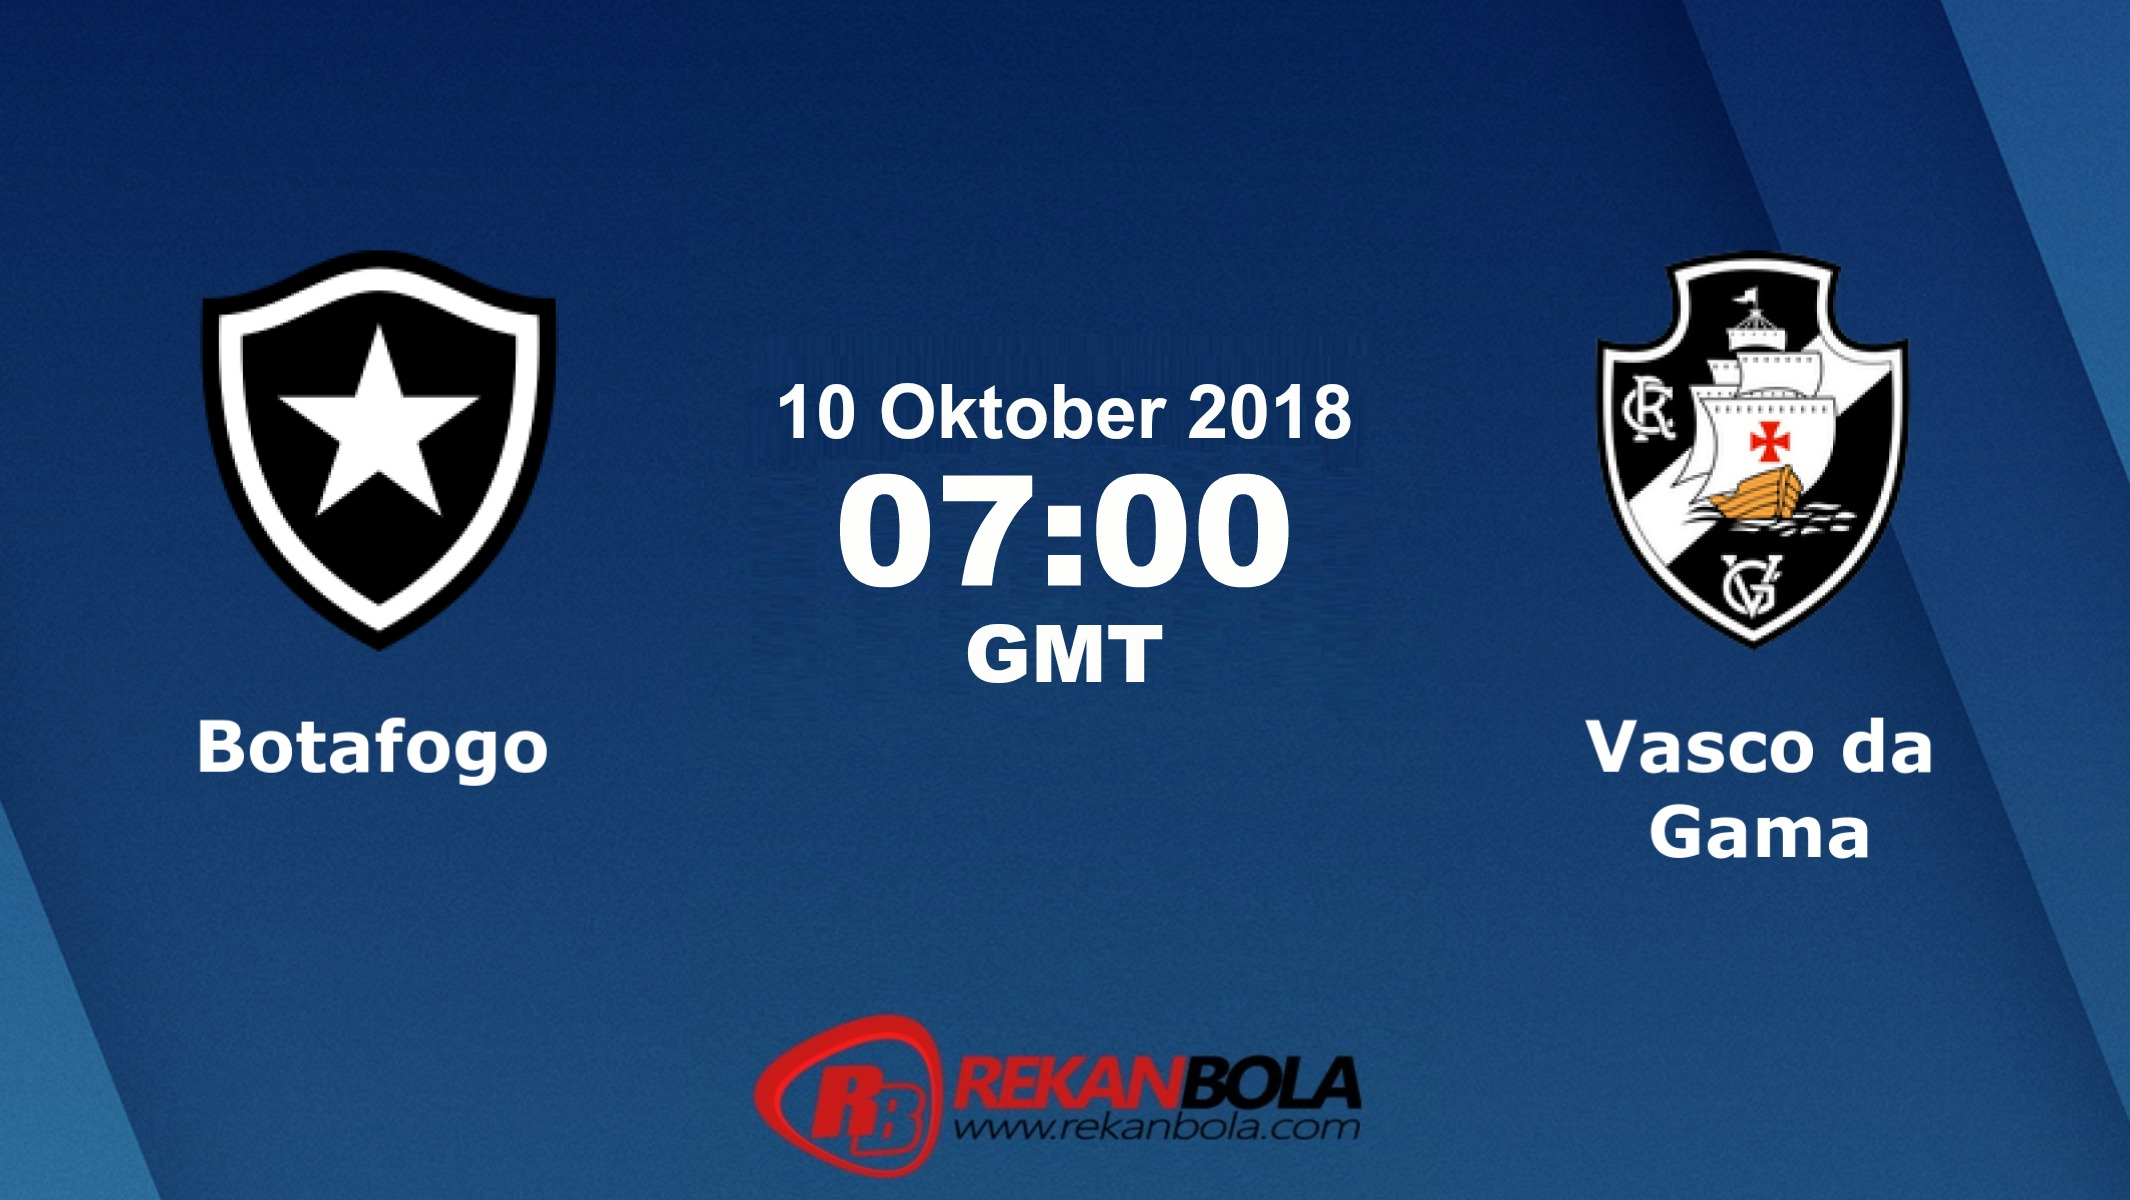 Nonton Siaran Live Streaming Botafogo Vs Vasco 10 Oktober 2018